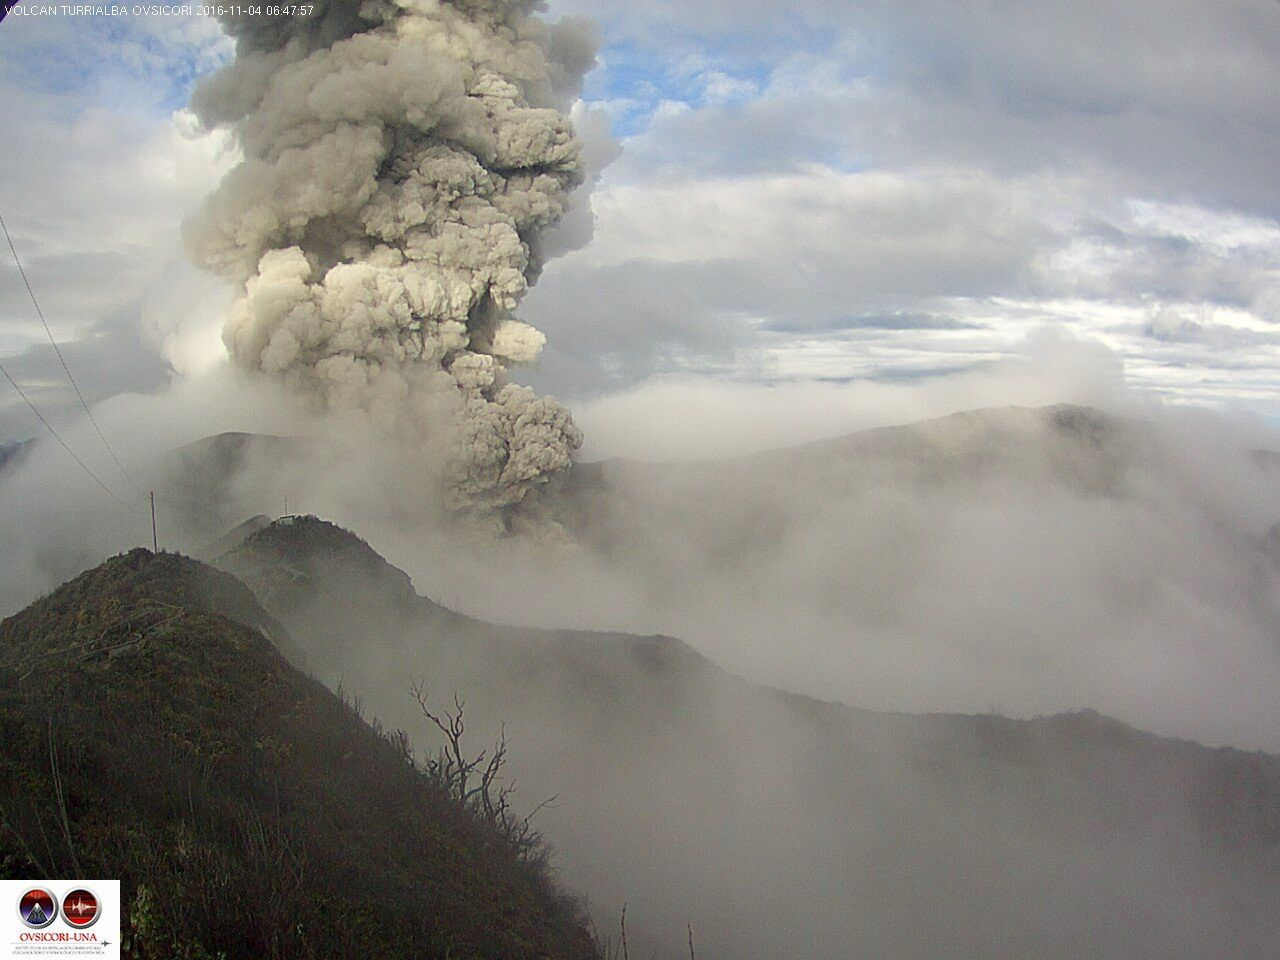 Turrialba - émission de cendres du 04.11.2016 / 6h48 - webcam Ovsicori